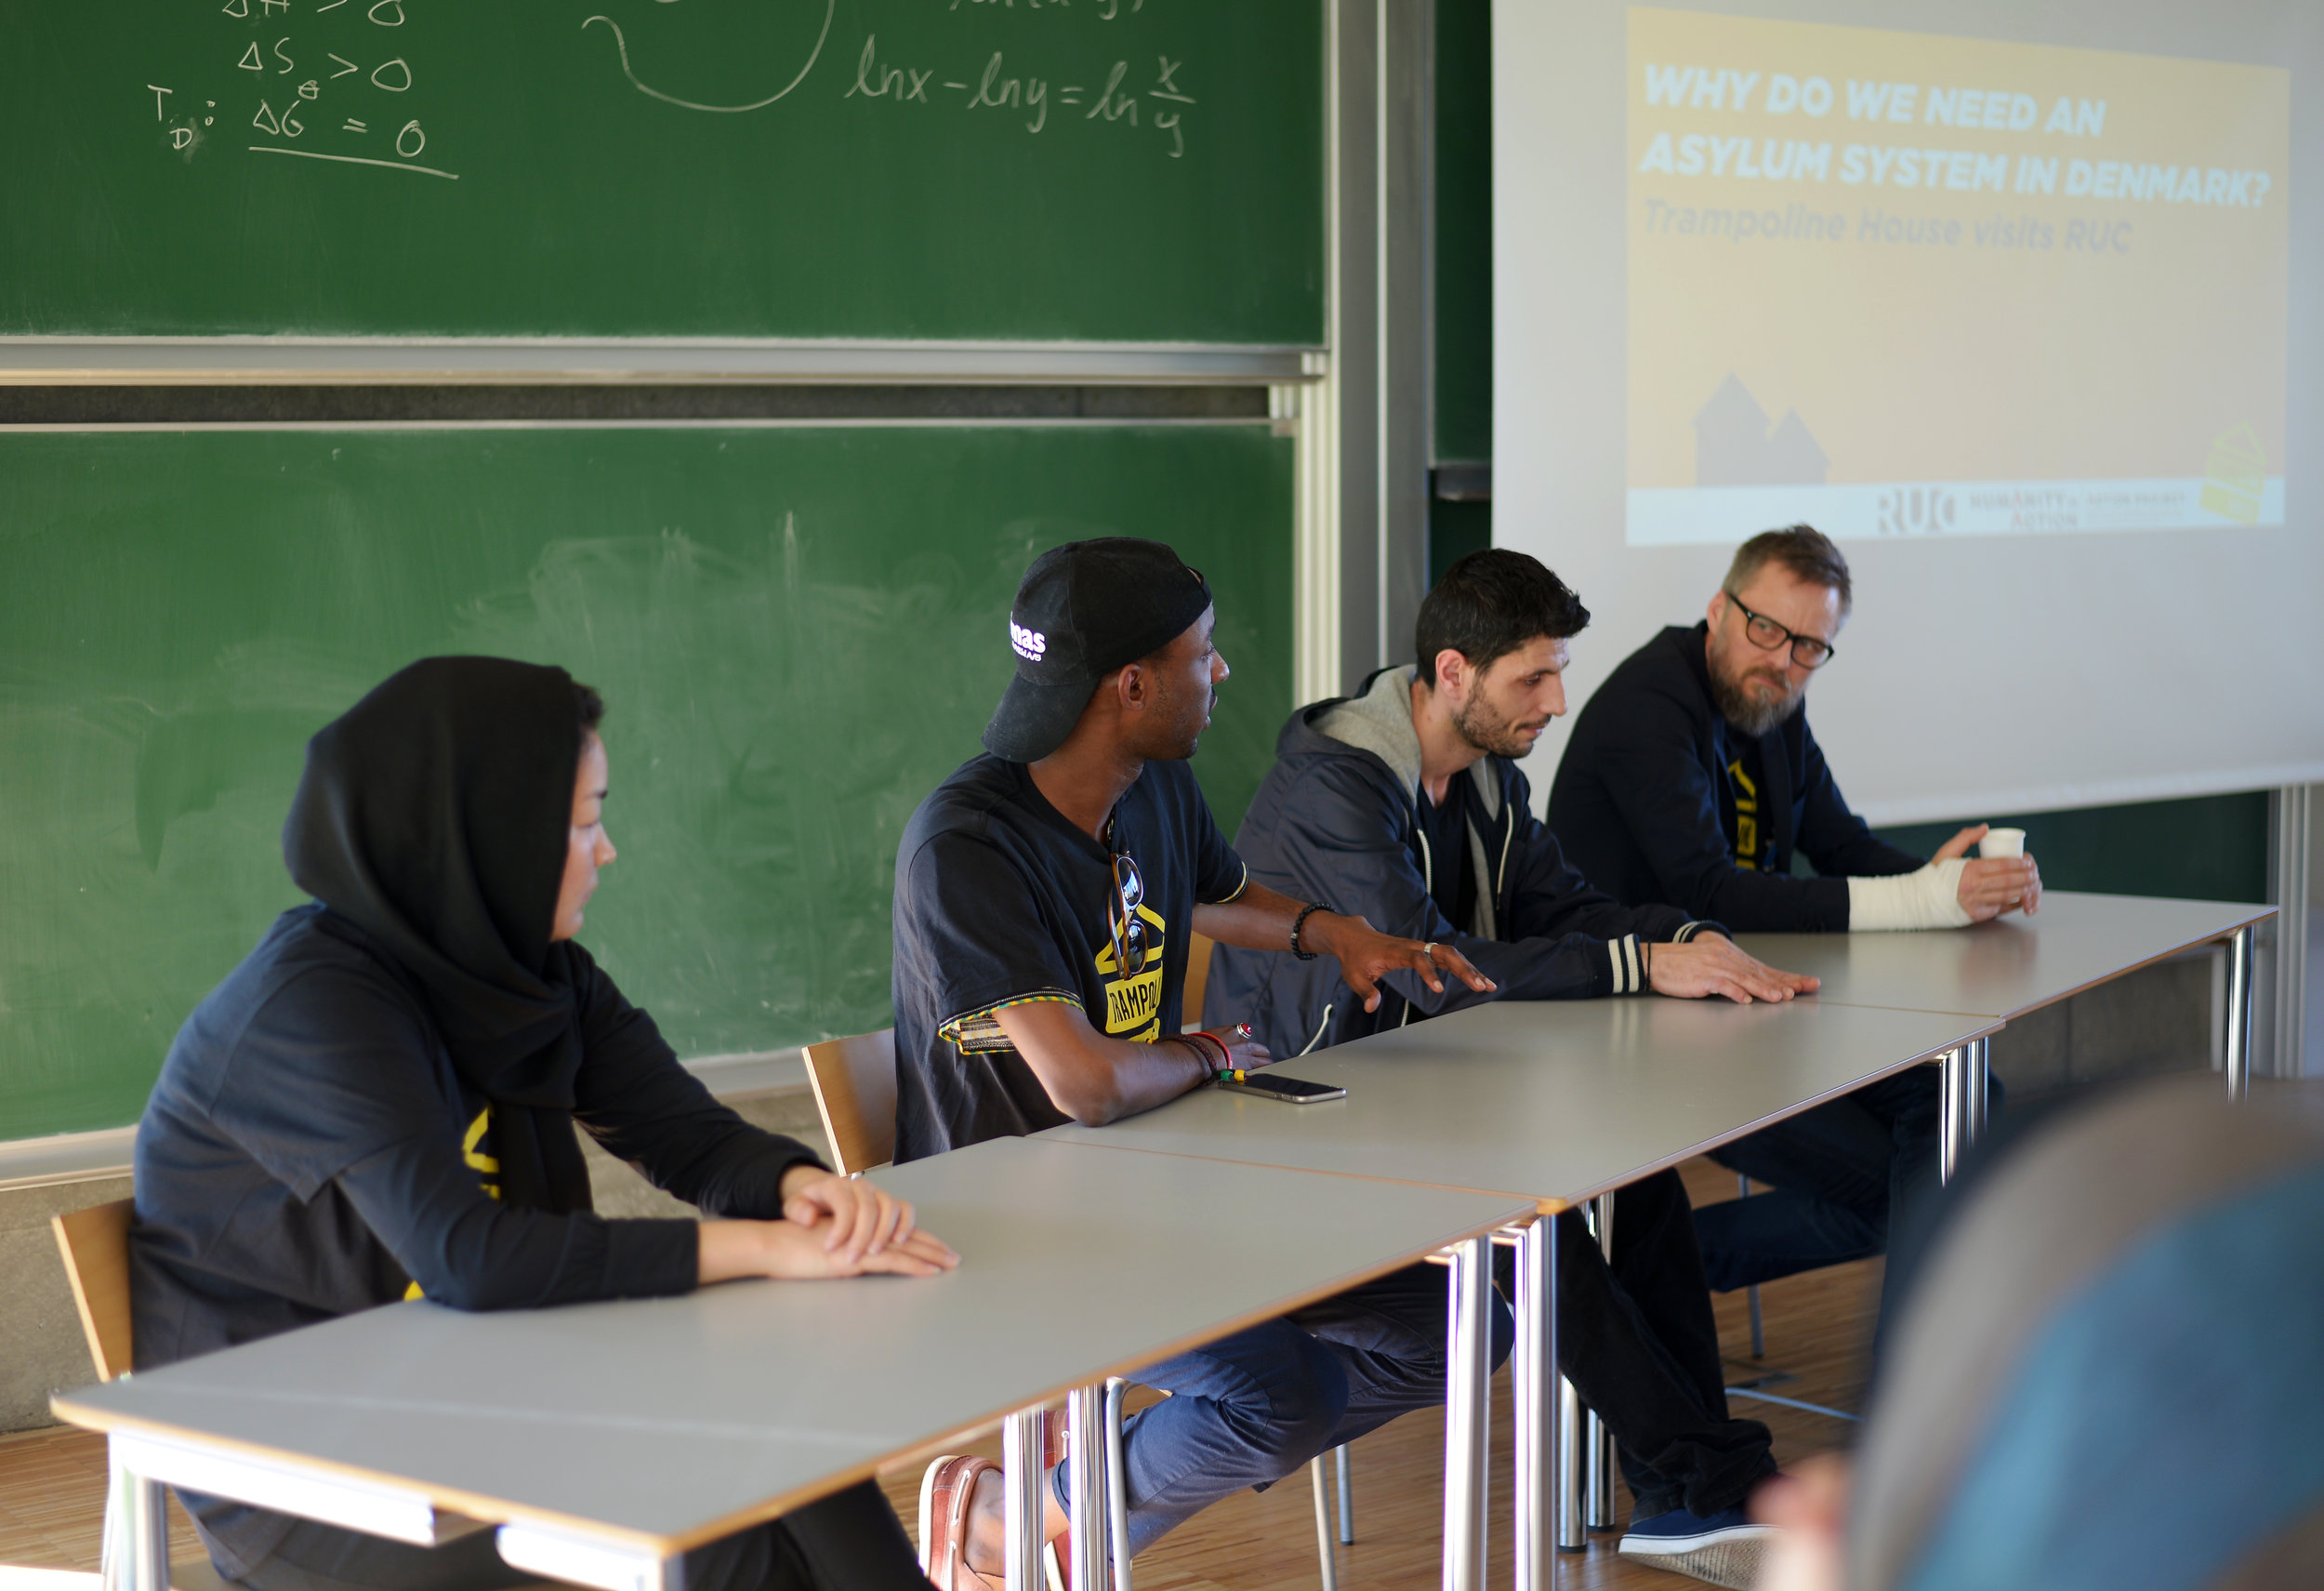 From right to left: Masoumeh, Kevin, Omid and Morten participating in an expert panel at Roskilde University. Photo: Anna Emy.